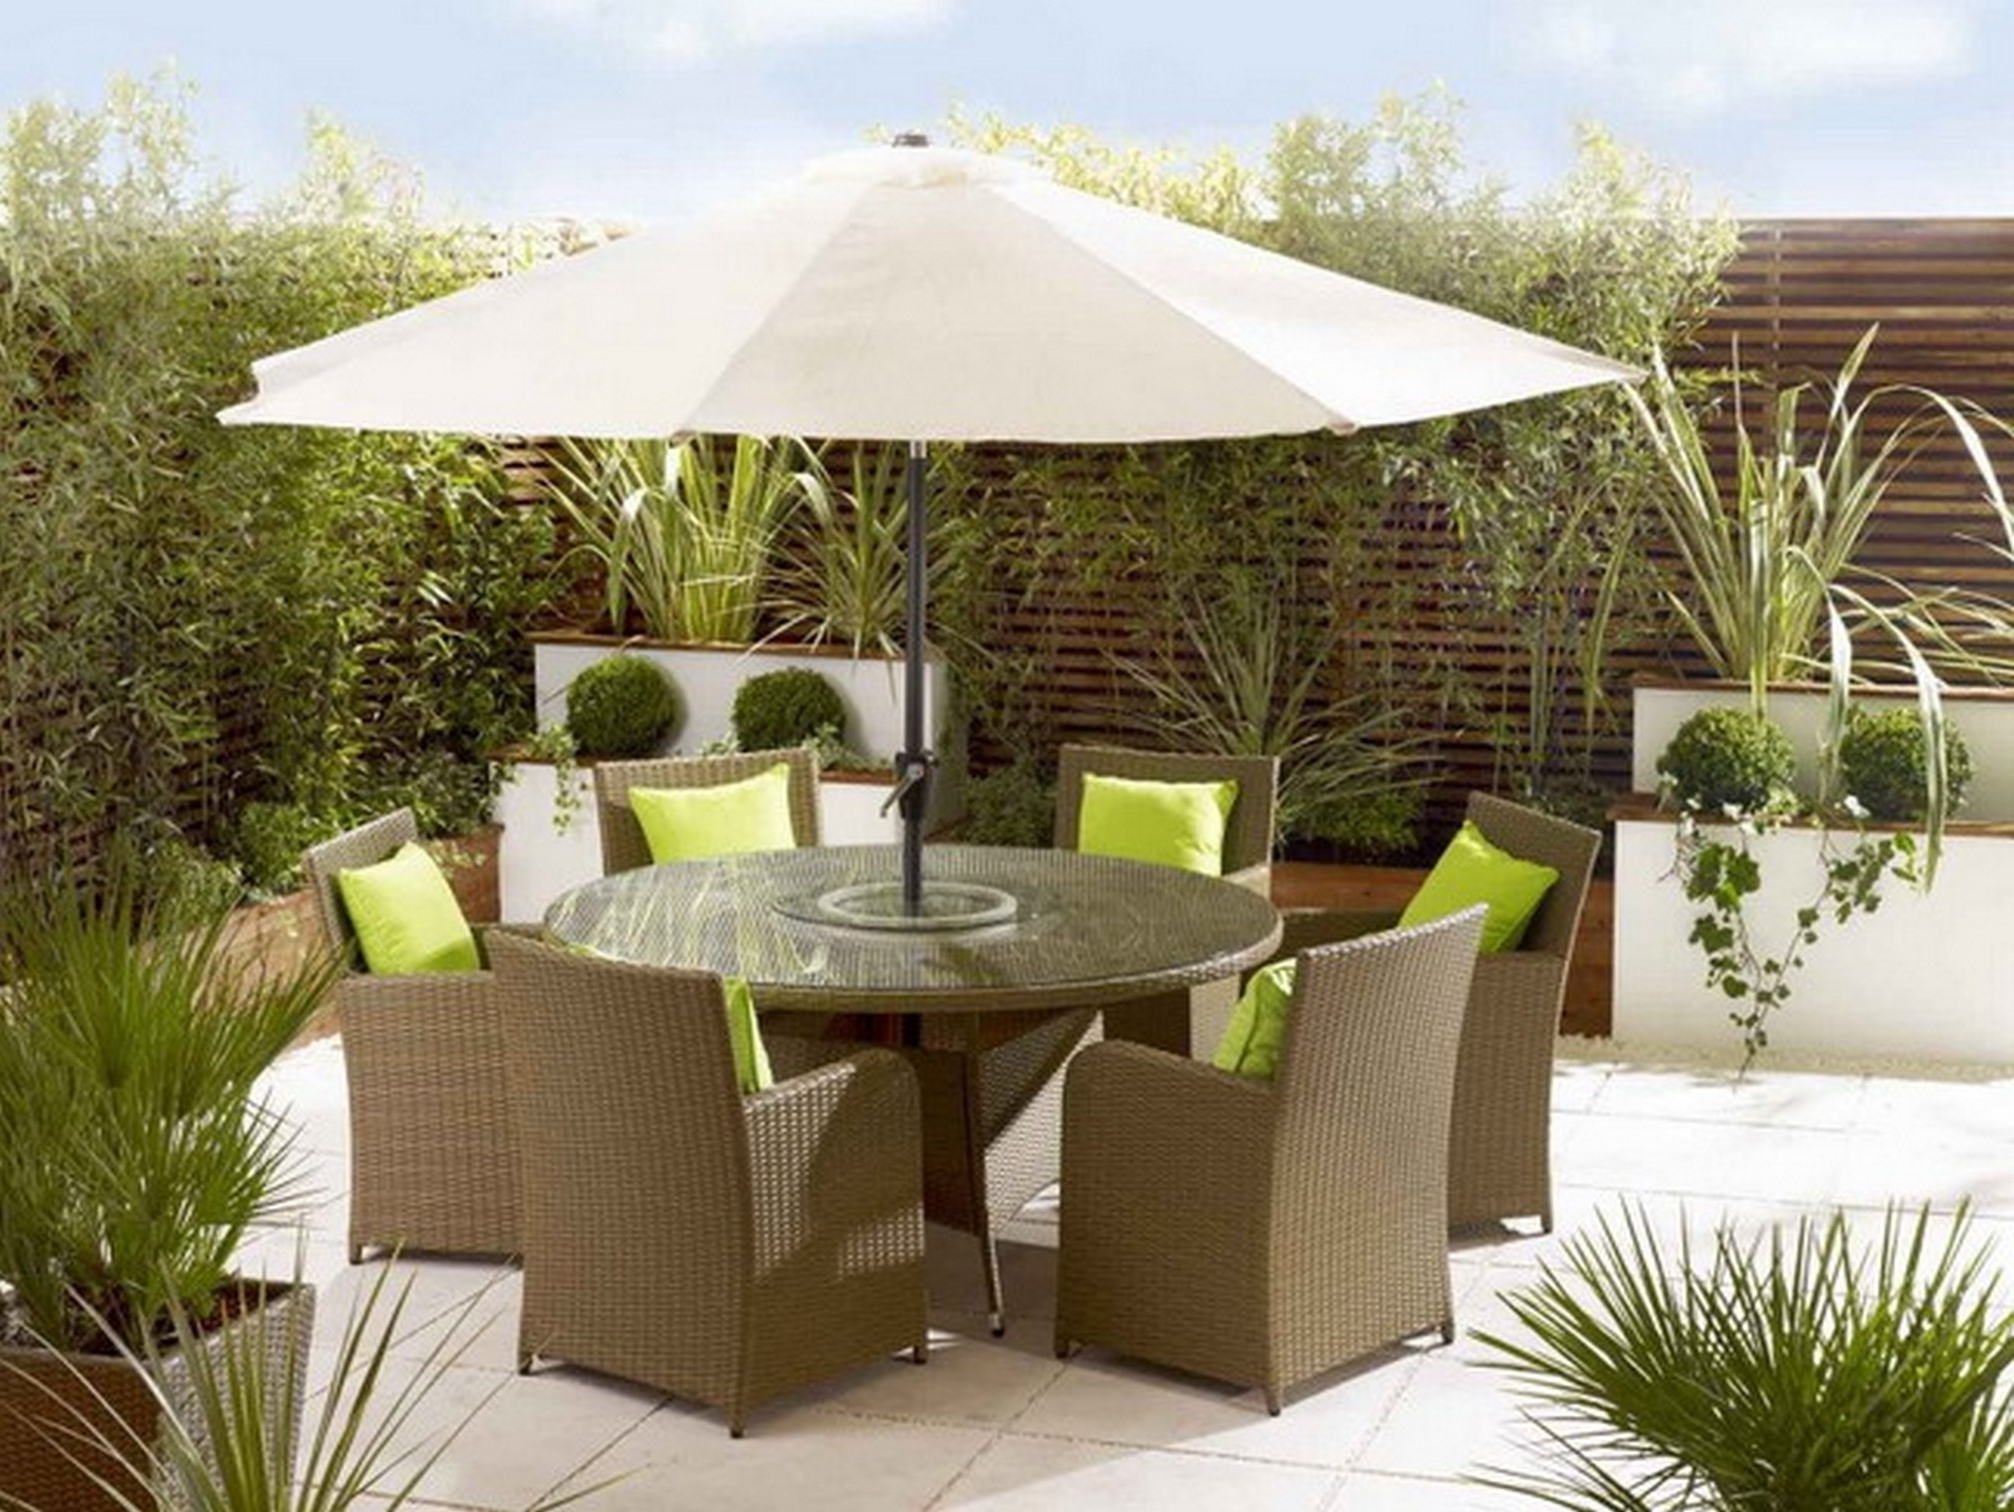 Free Standing Umbrellas For Patio For Best And Newest Free Standing Umbrellas For Patio (Gallery 11 of 20)